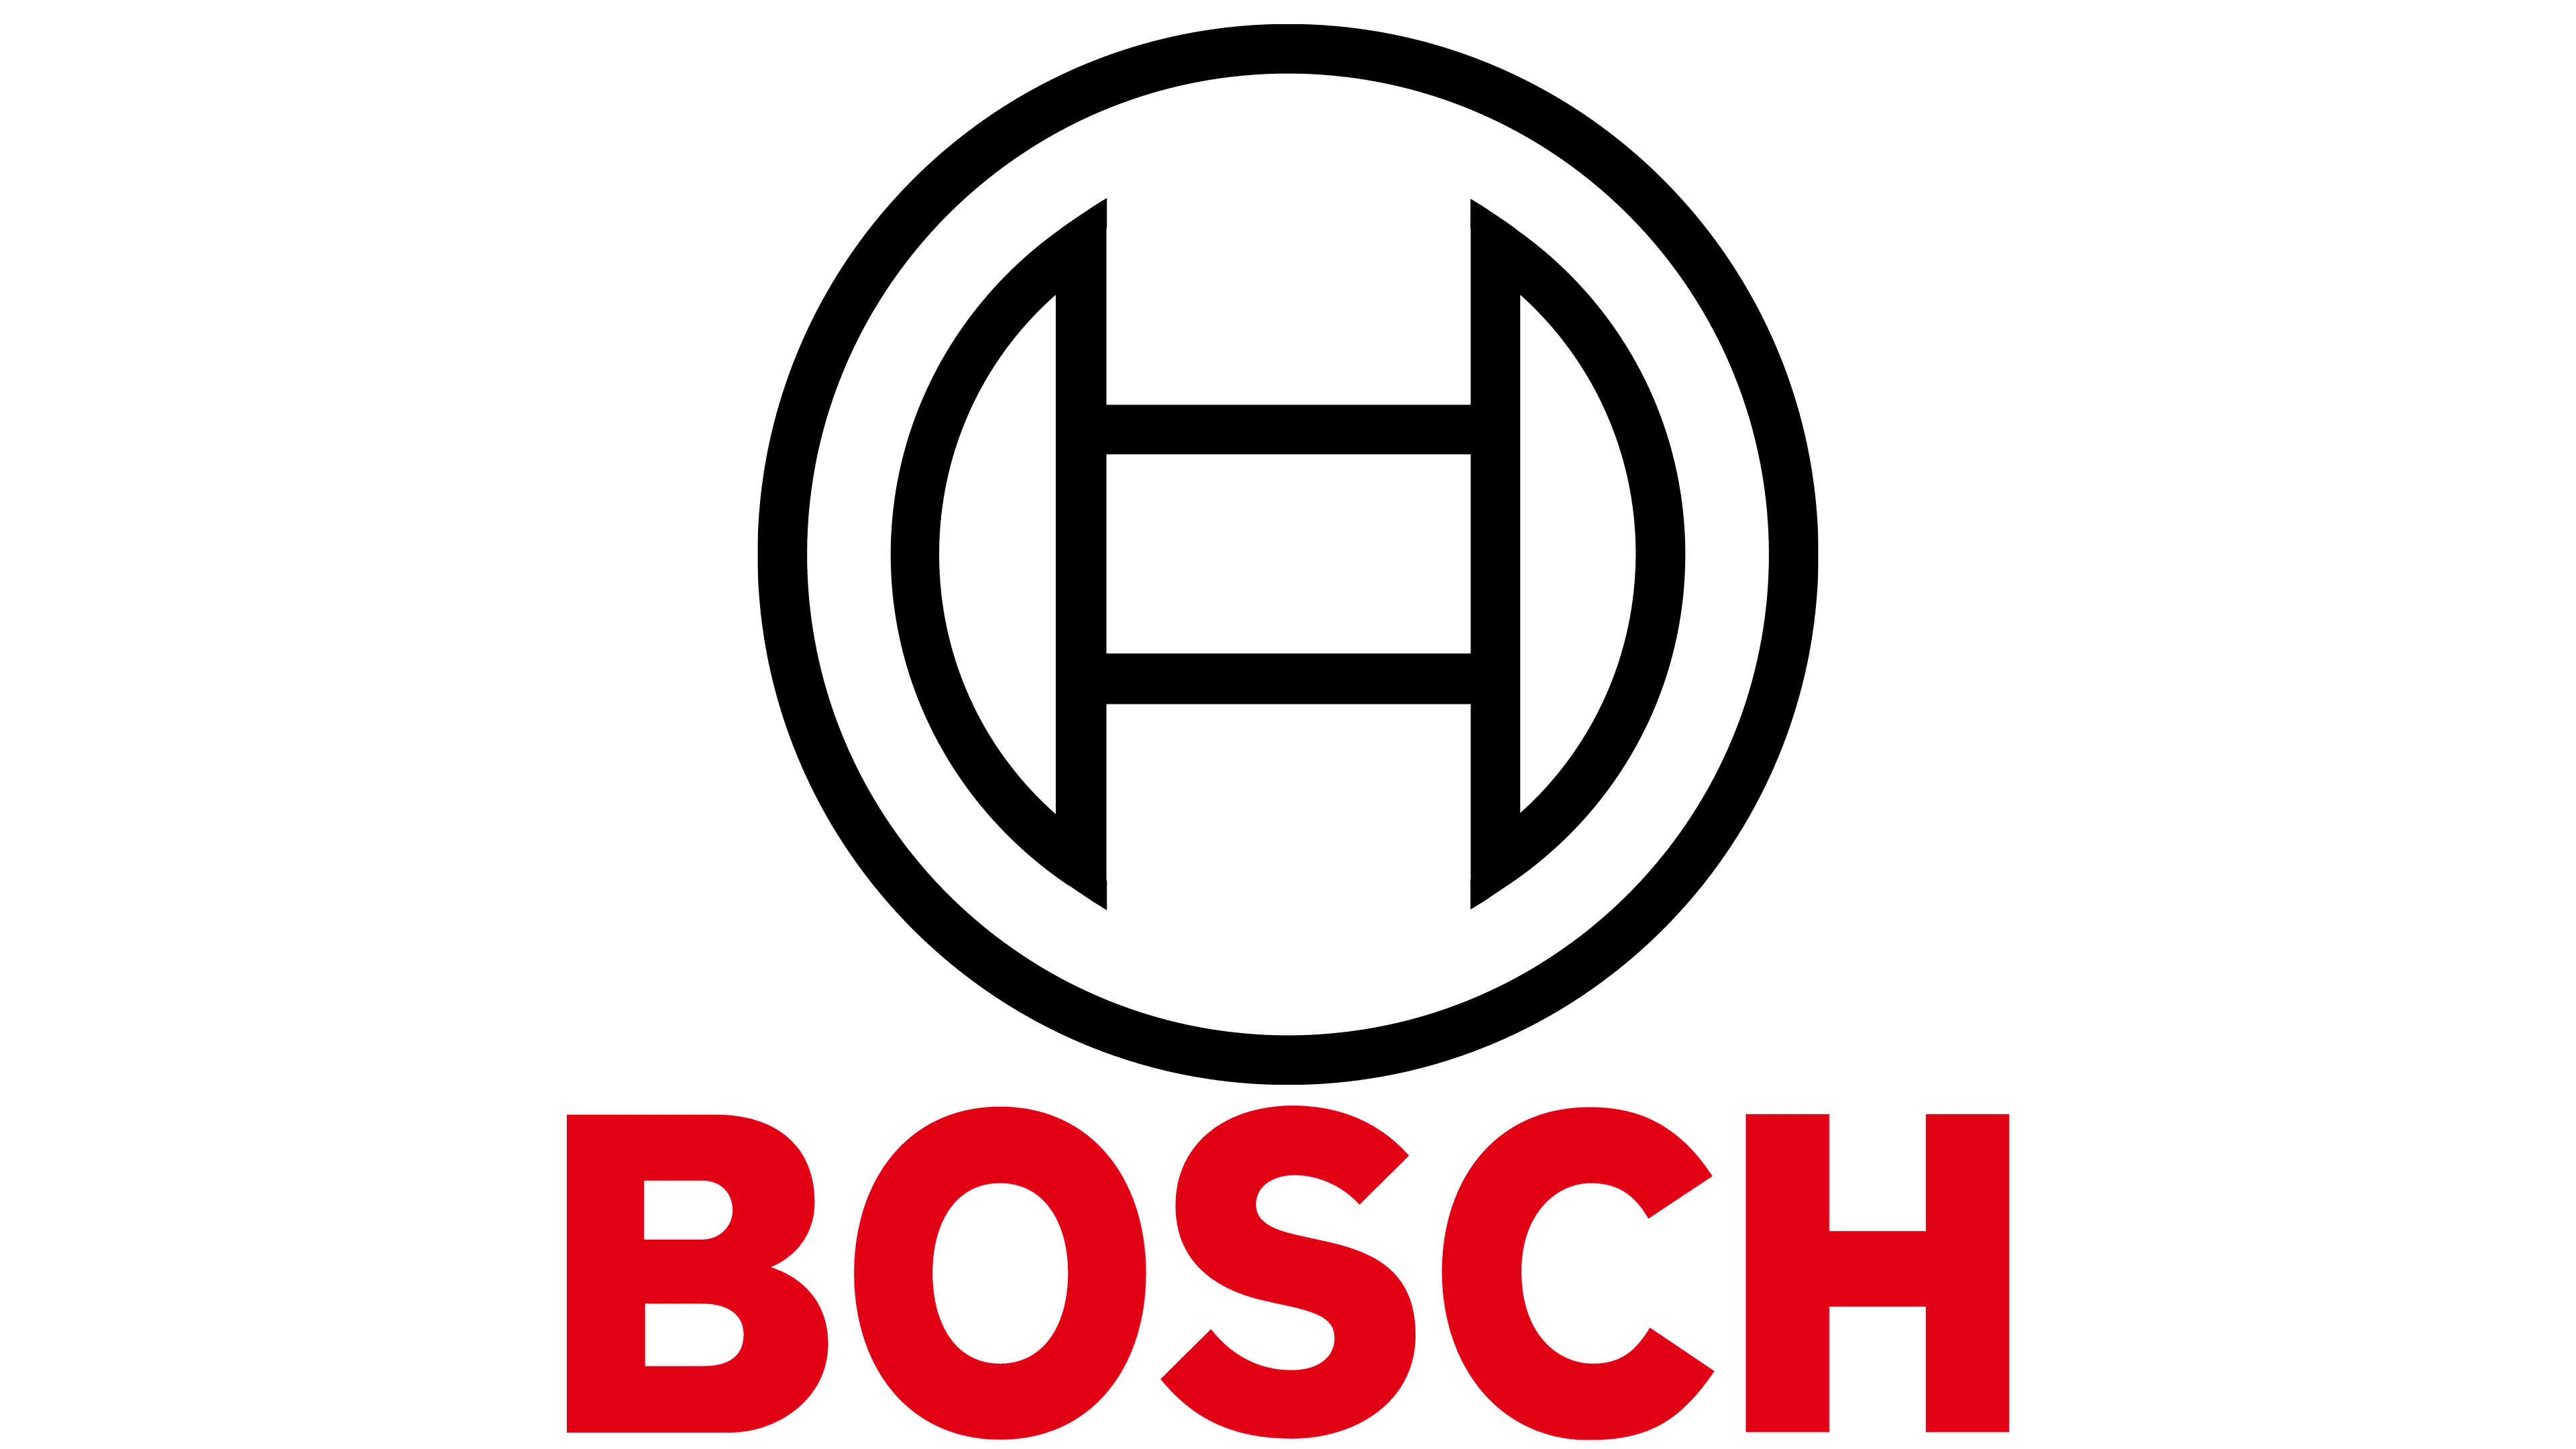 Bosch Logo The Most Famous Brands And Company Logos In The World